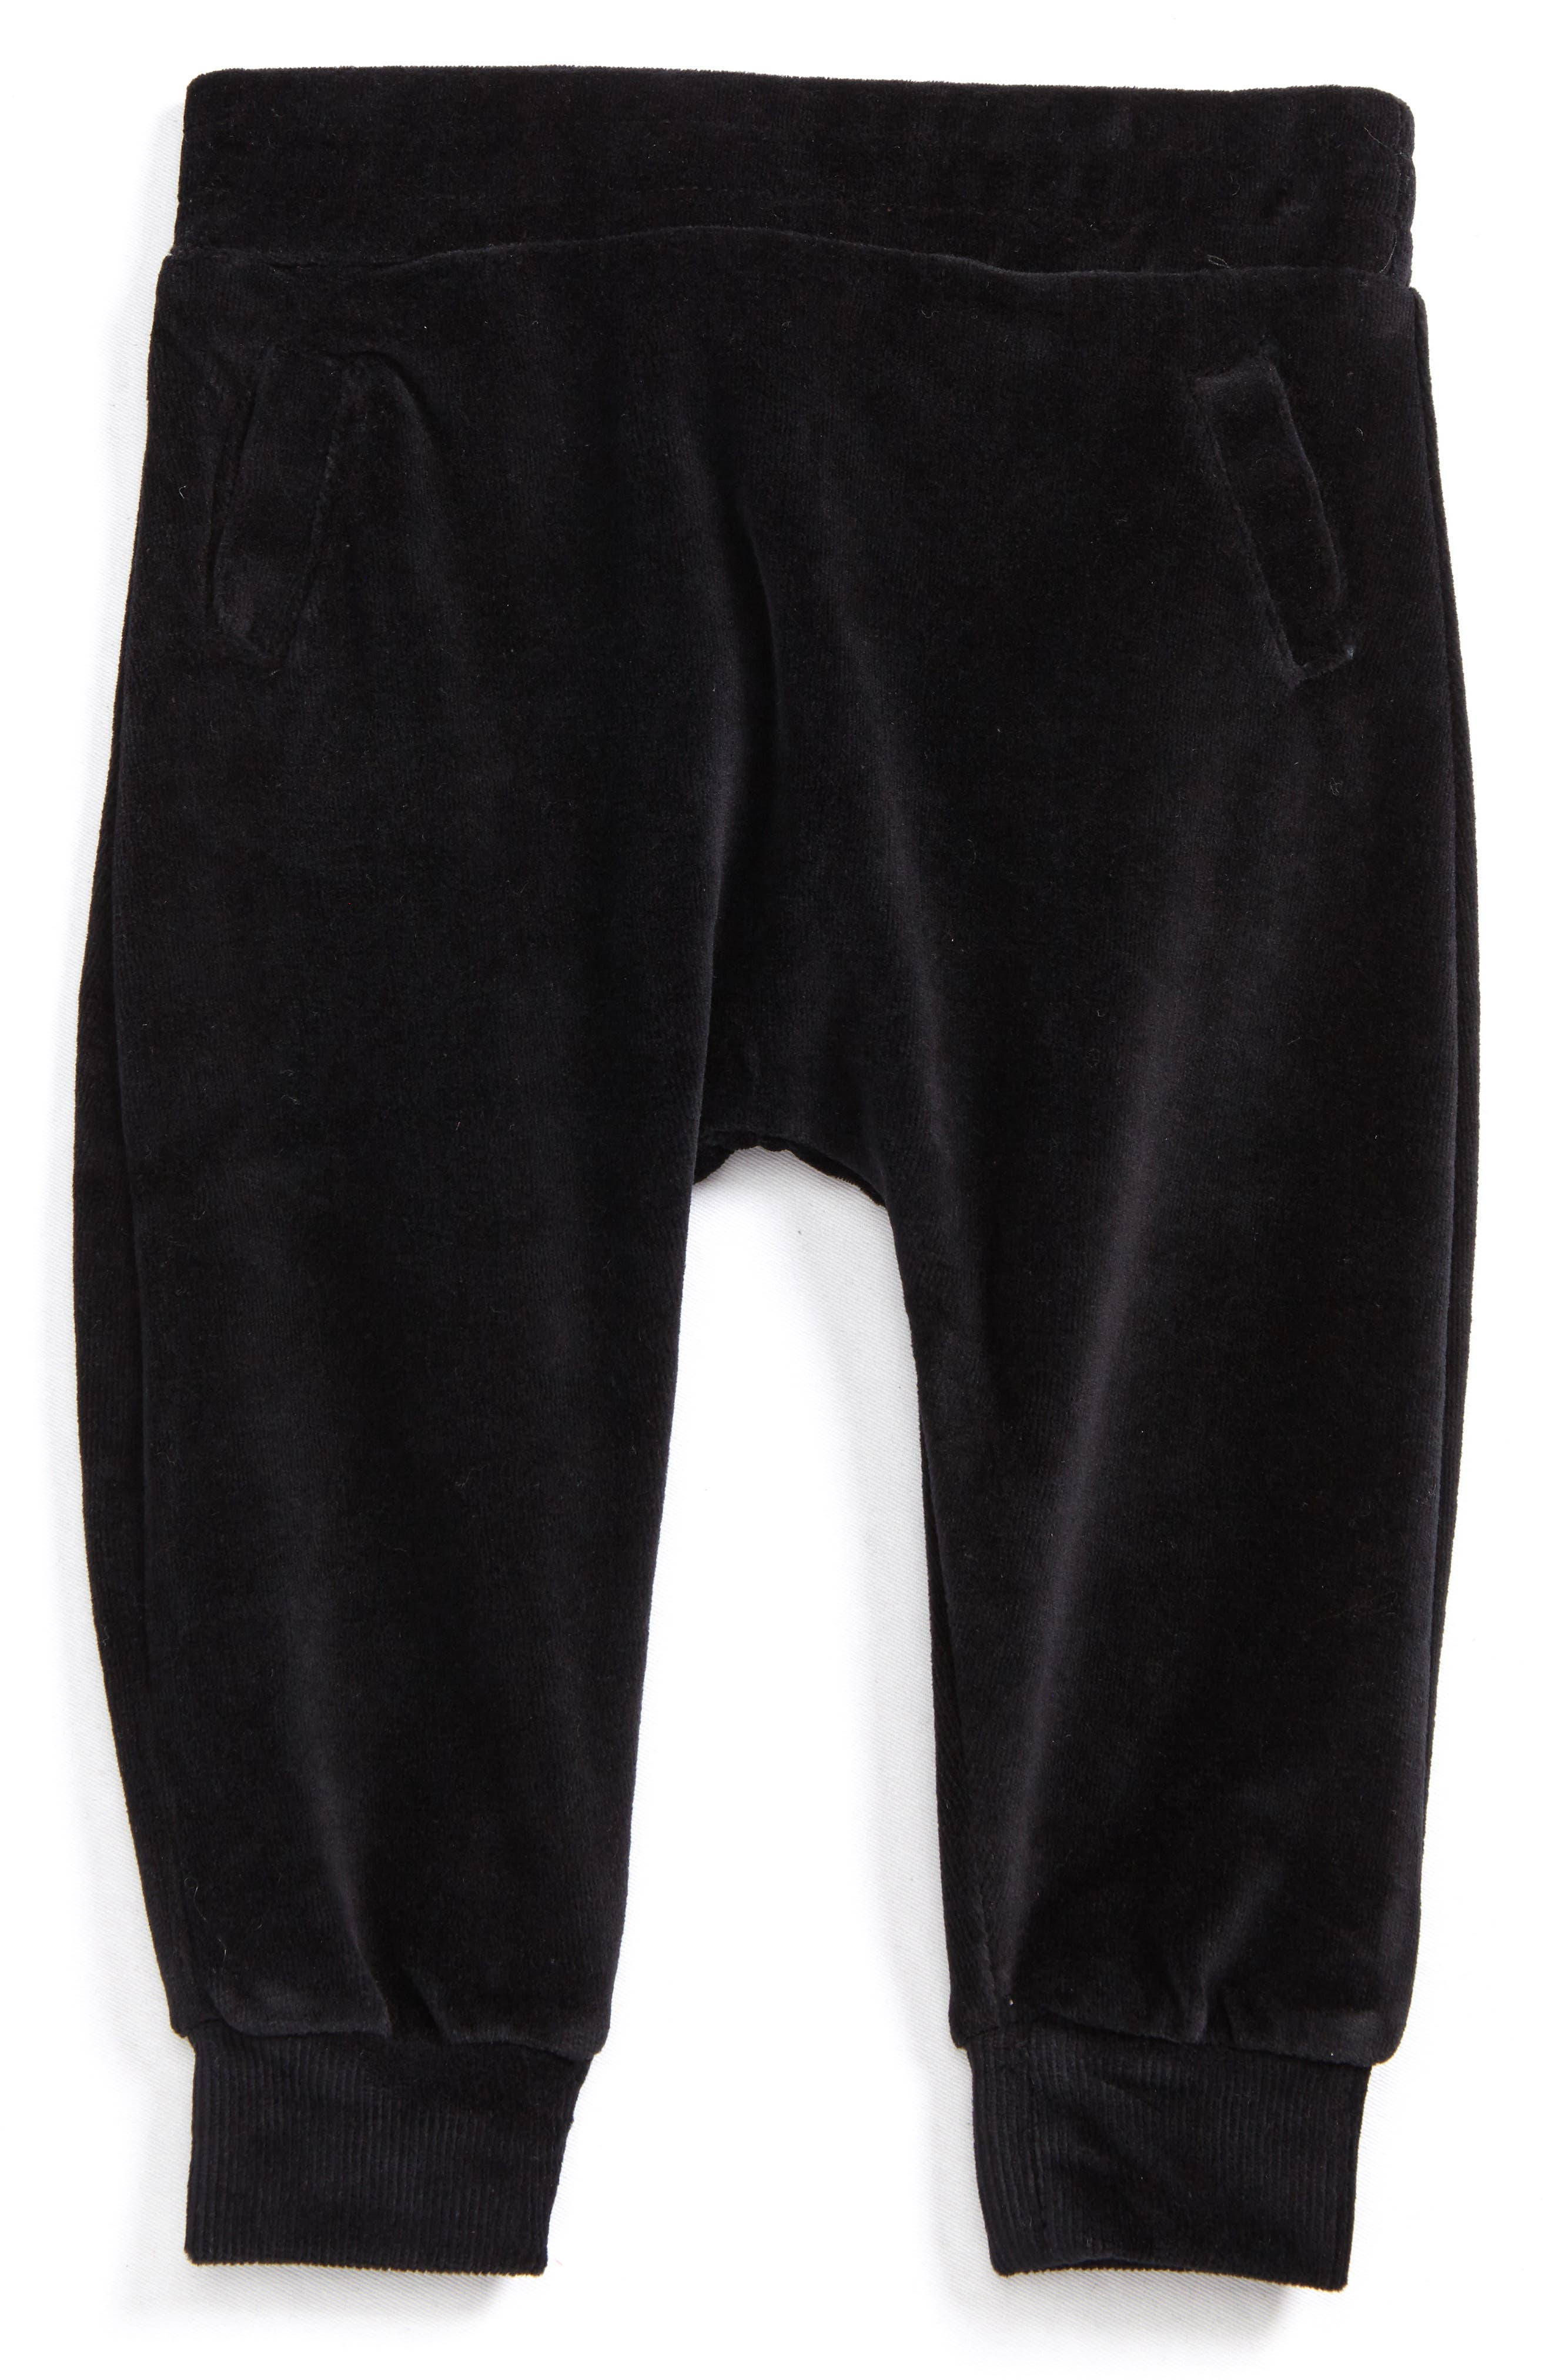 Main Image - ag adriano goldschmied kids Velour Sweatpants (Baby Girls)